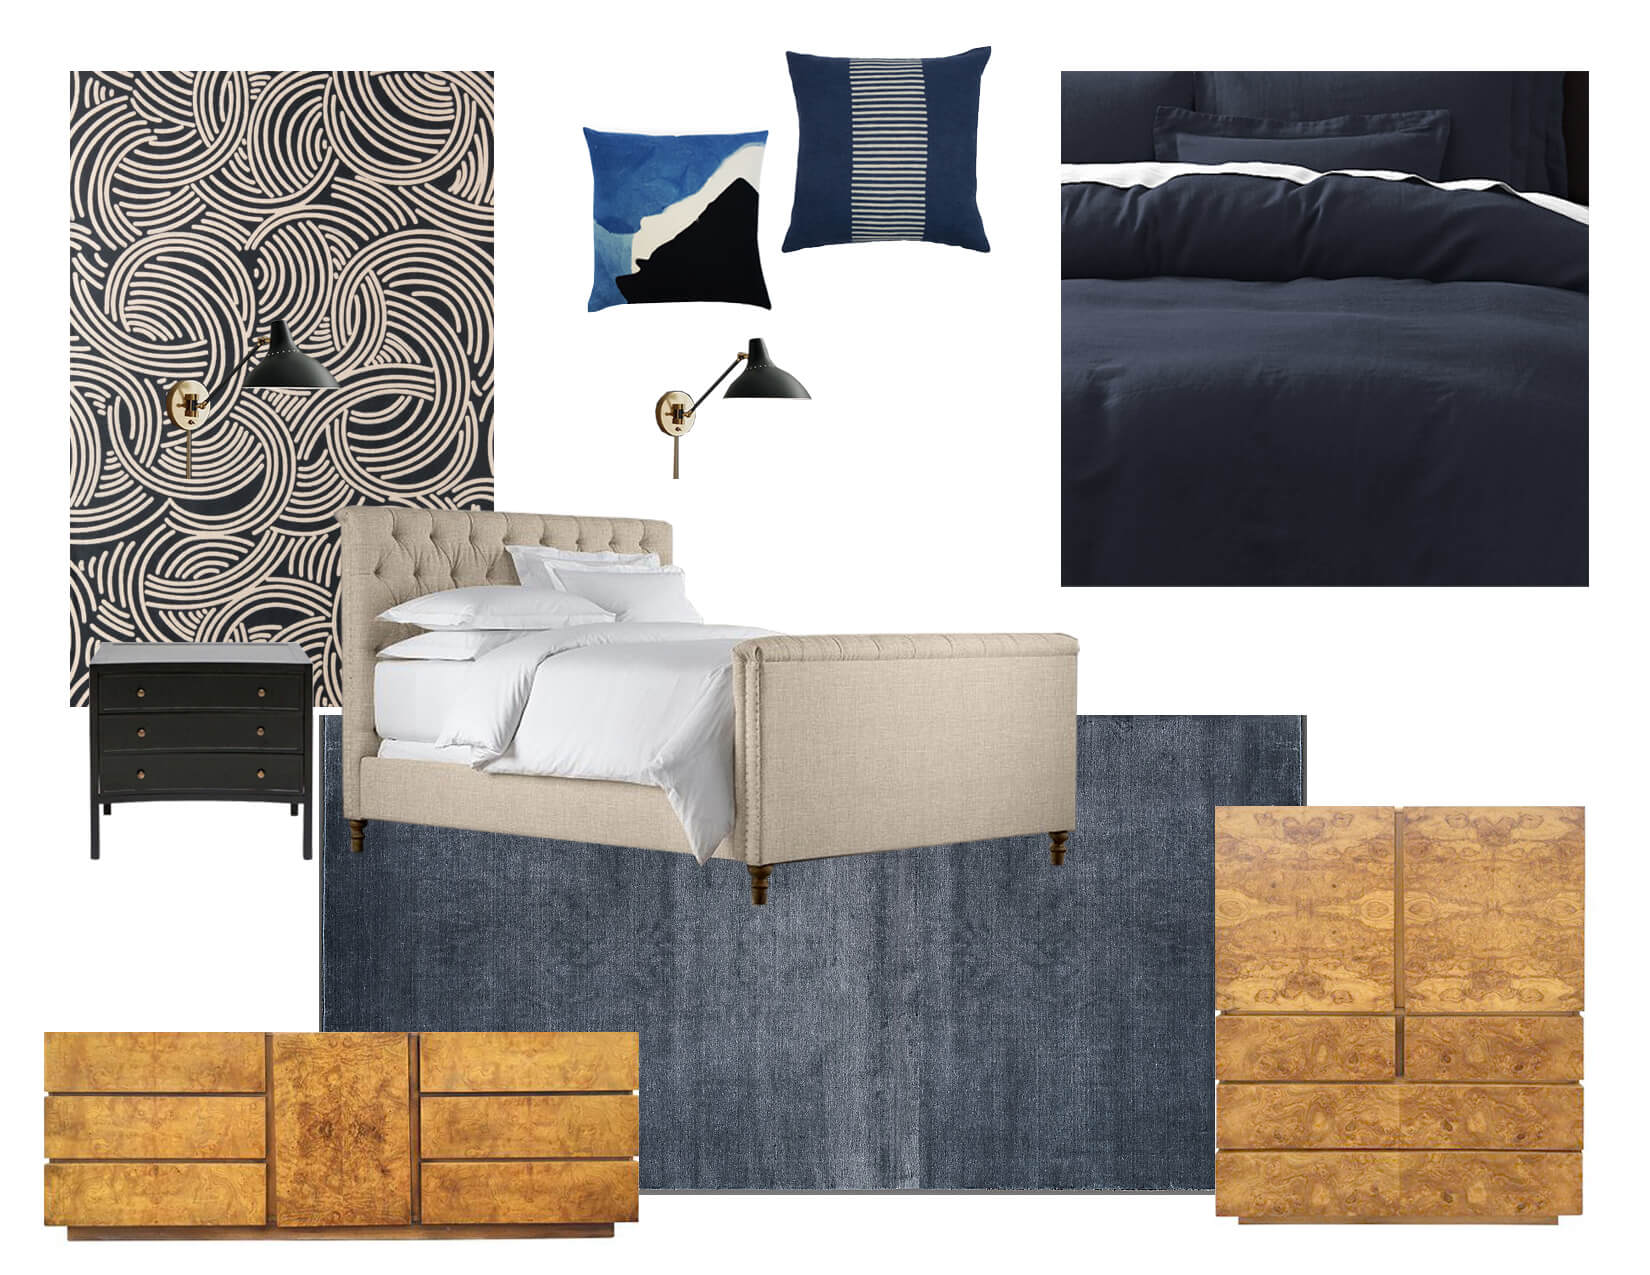 11_GINNY_MACDONALD_TRADITIONAL_BEDROOM_MOODBOARD